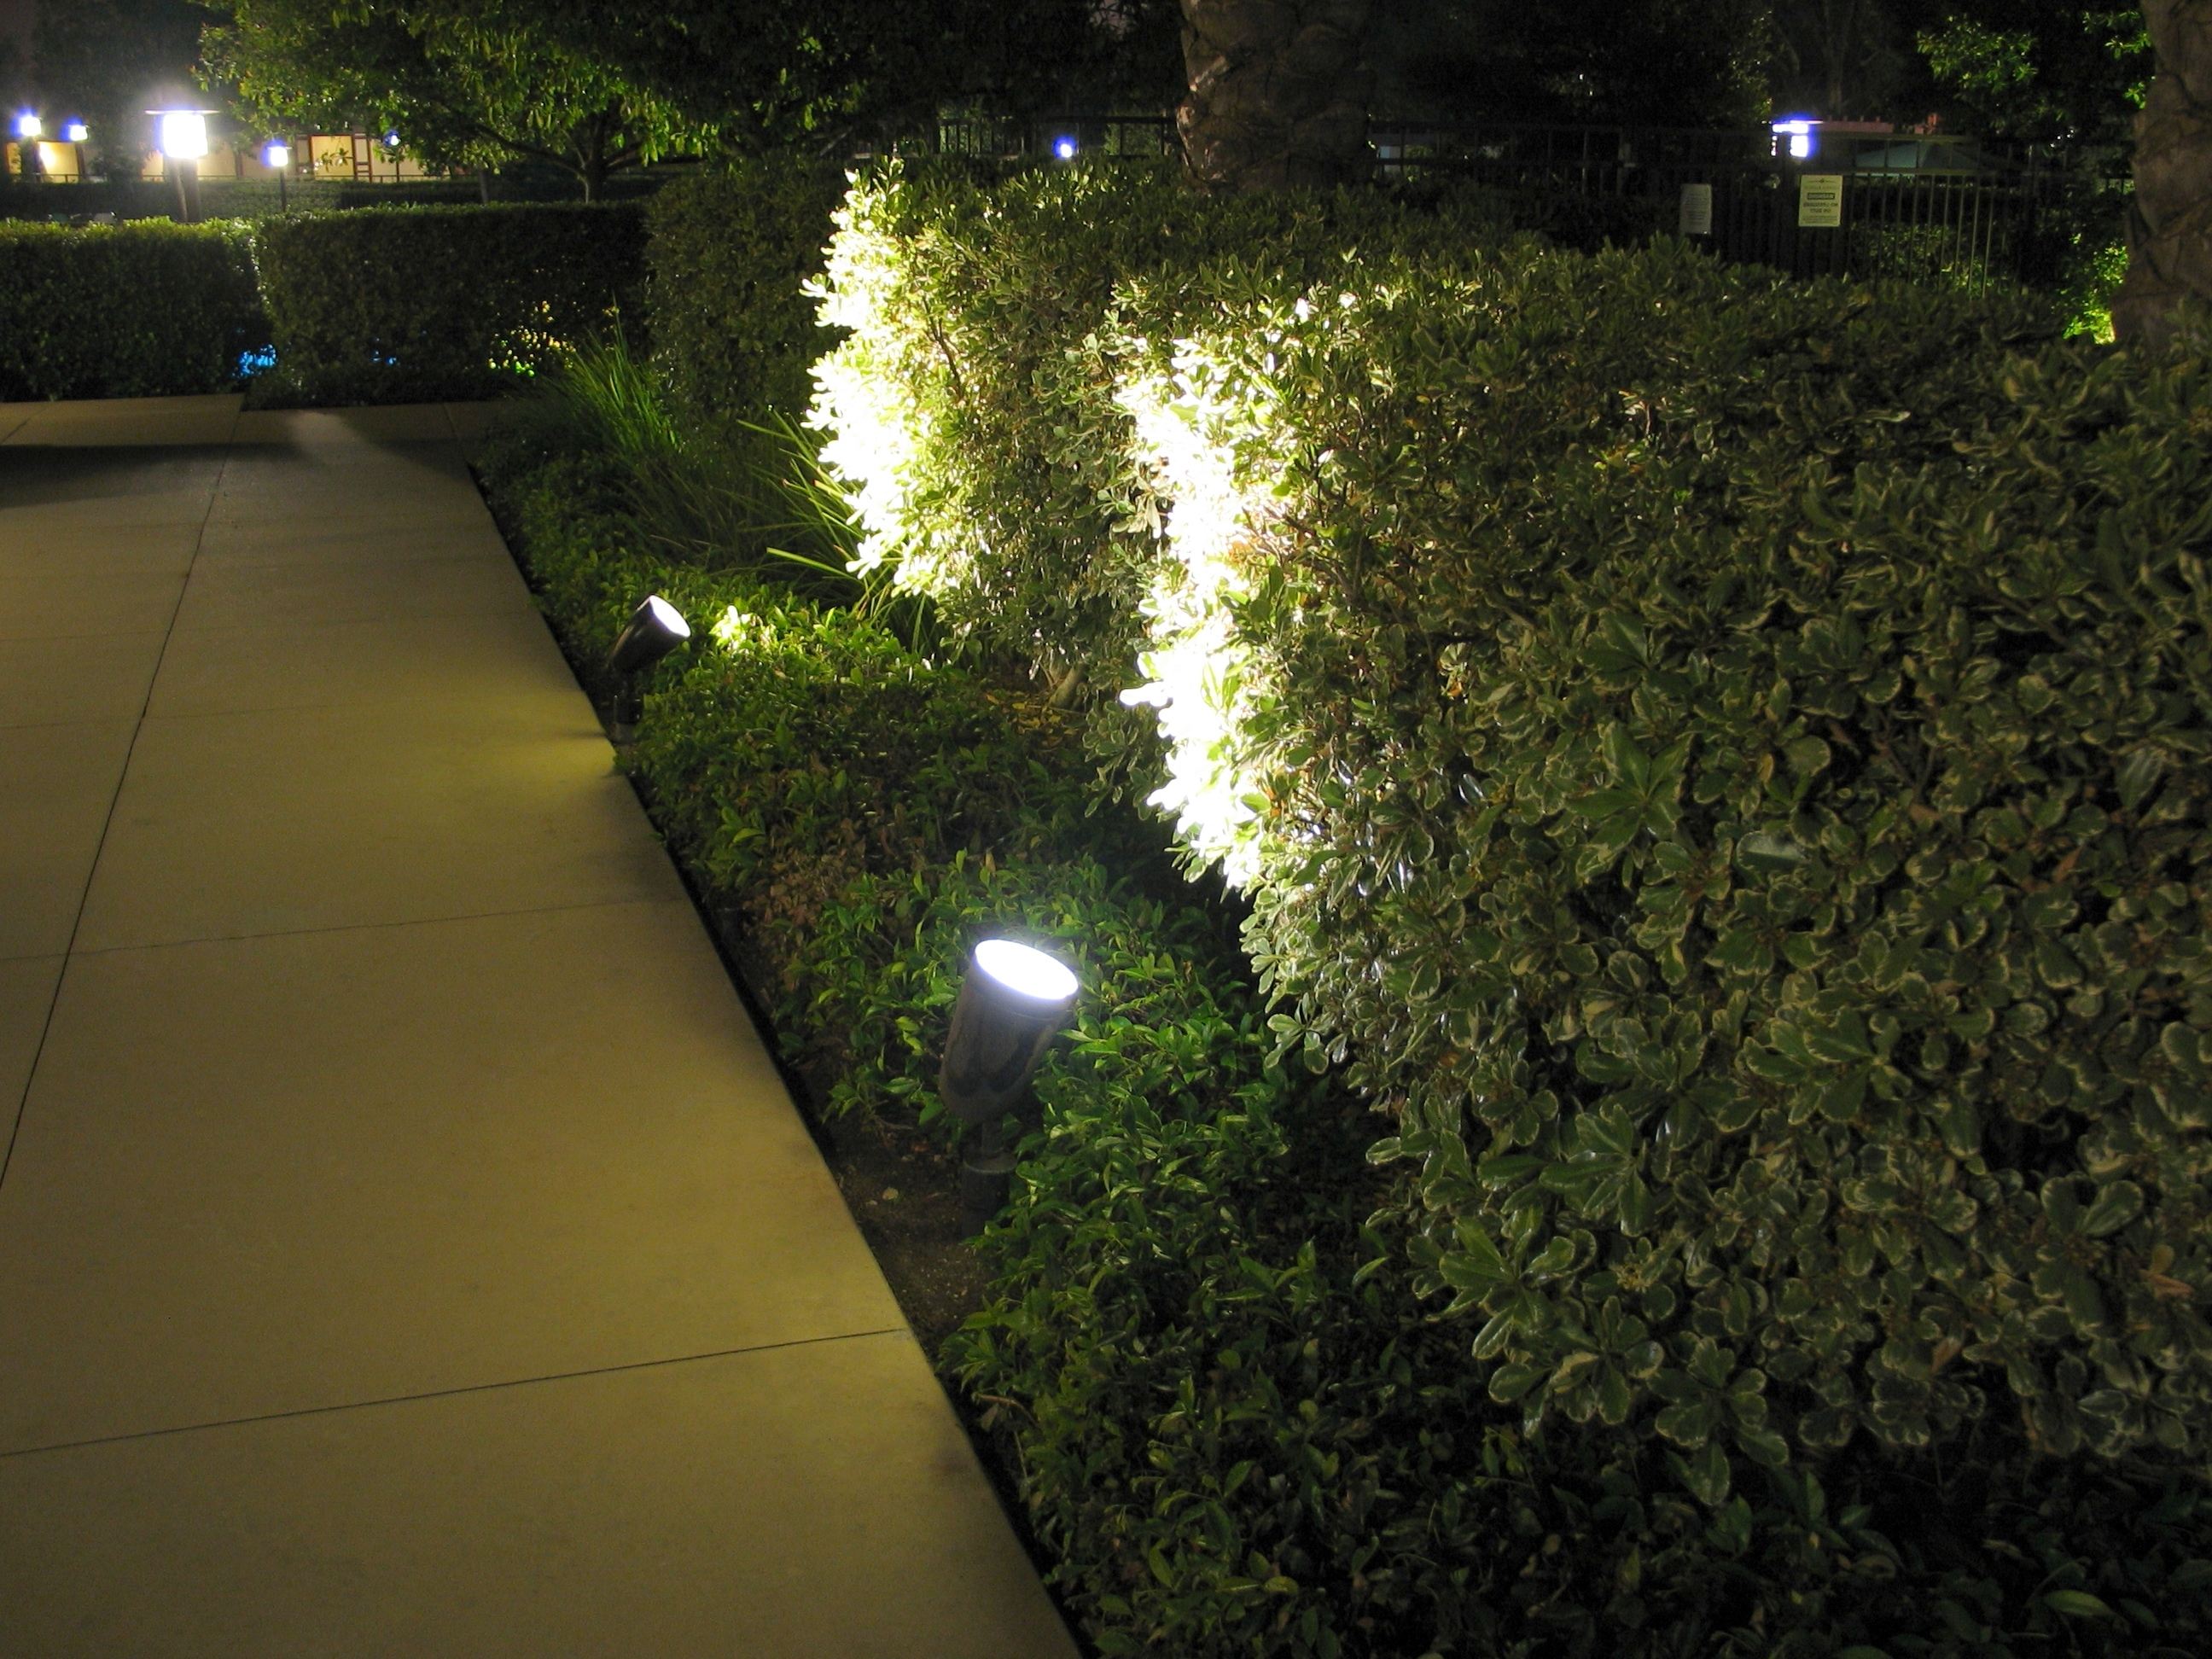 Outdoor Driveway Lanterns Within Most Current Led Lighting : Solar Outdoor Driveway Lighting Contemporary Used In (View 6 of 20)